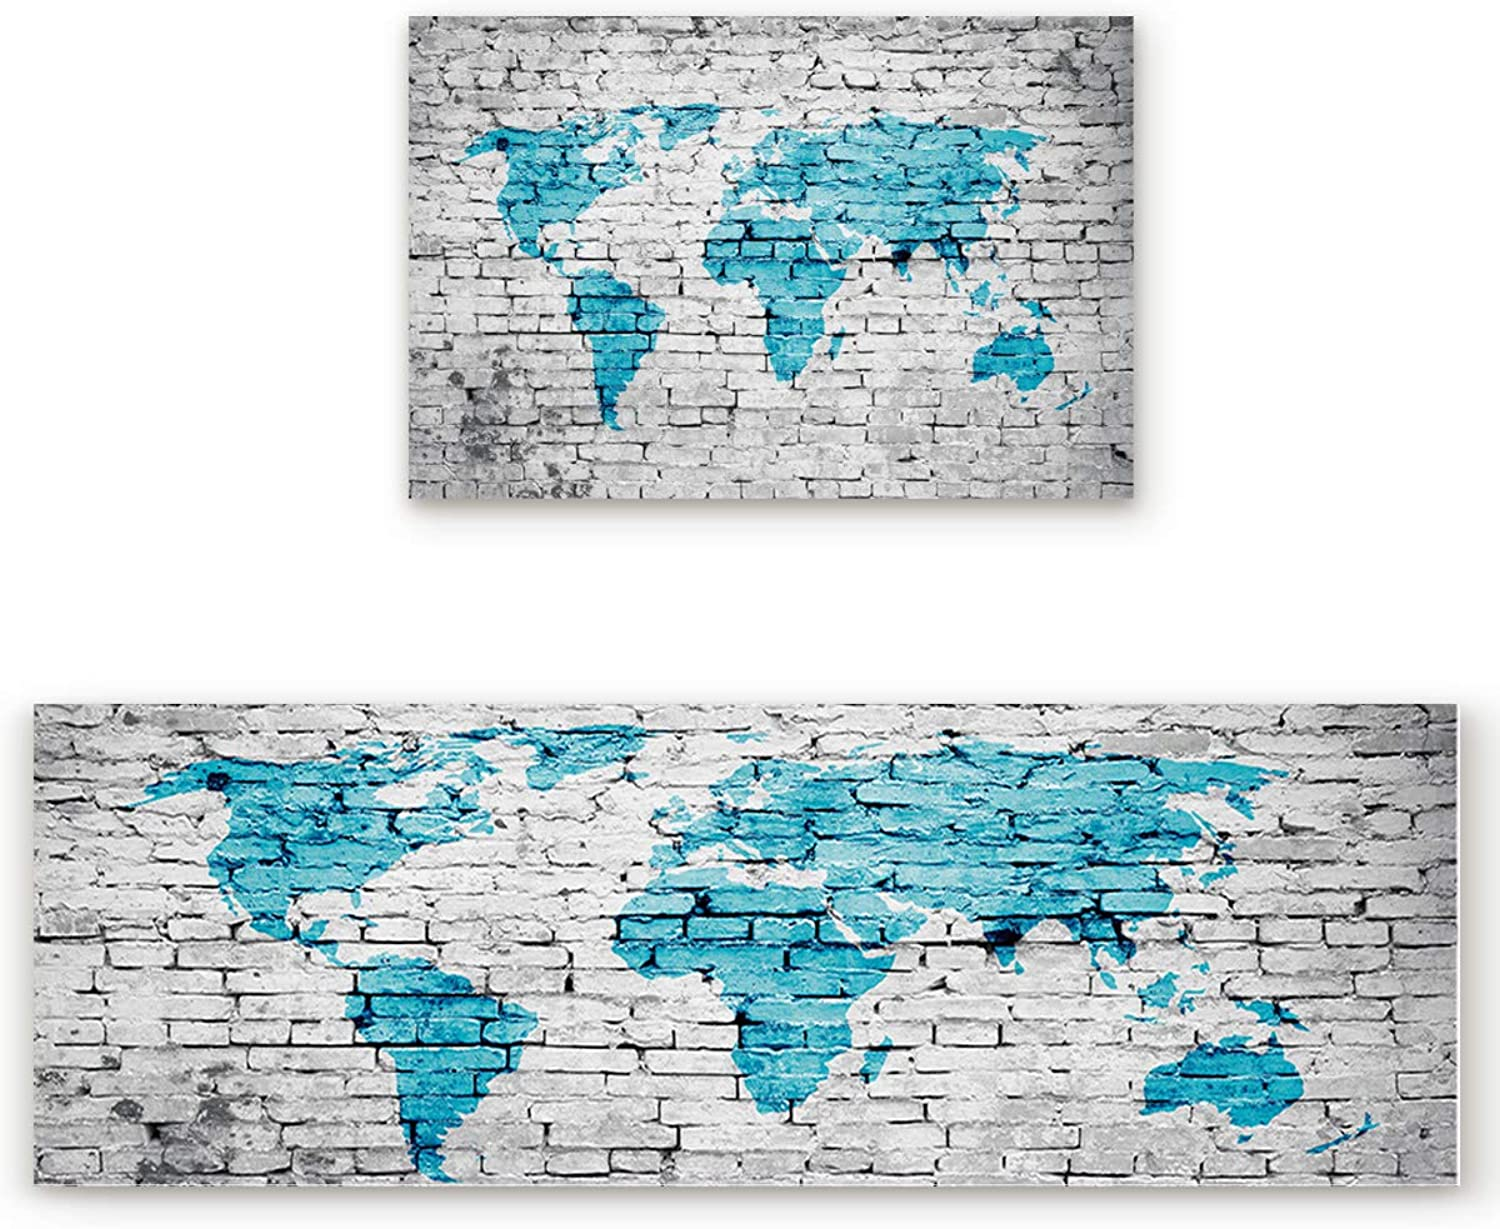 Savannan 2 Piece Non-Slip Kitchen Bathroom Entrance Mat Absorbent Durable Floor Doormat Runner Rug Set - World Map on Brick Wall